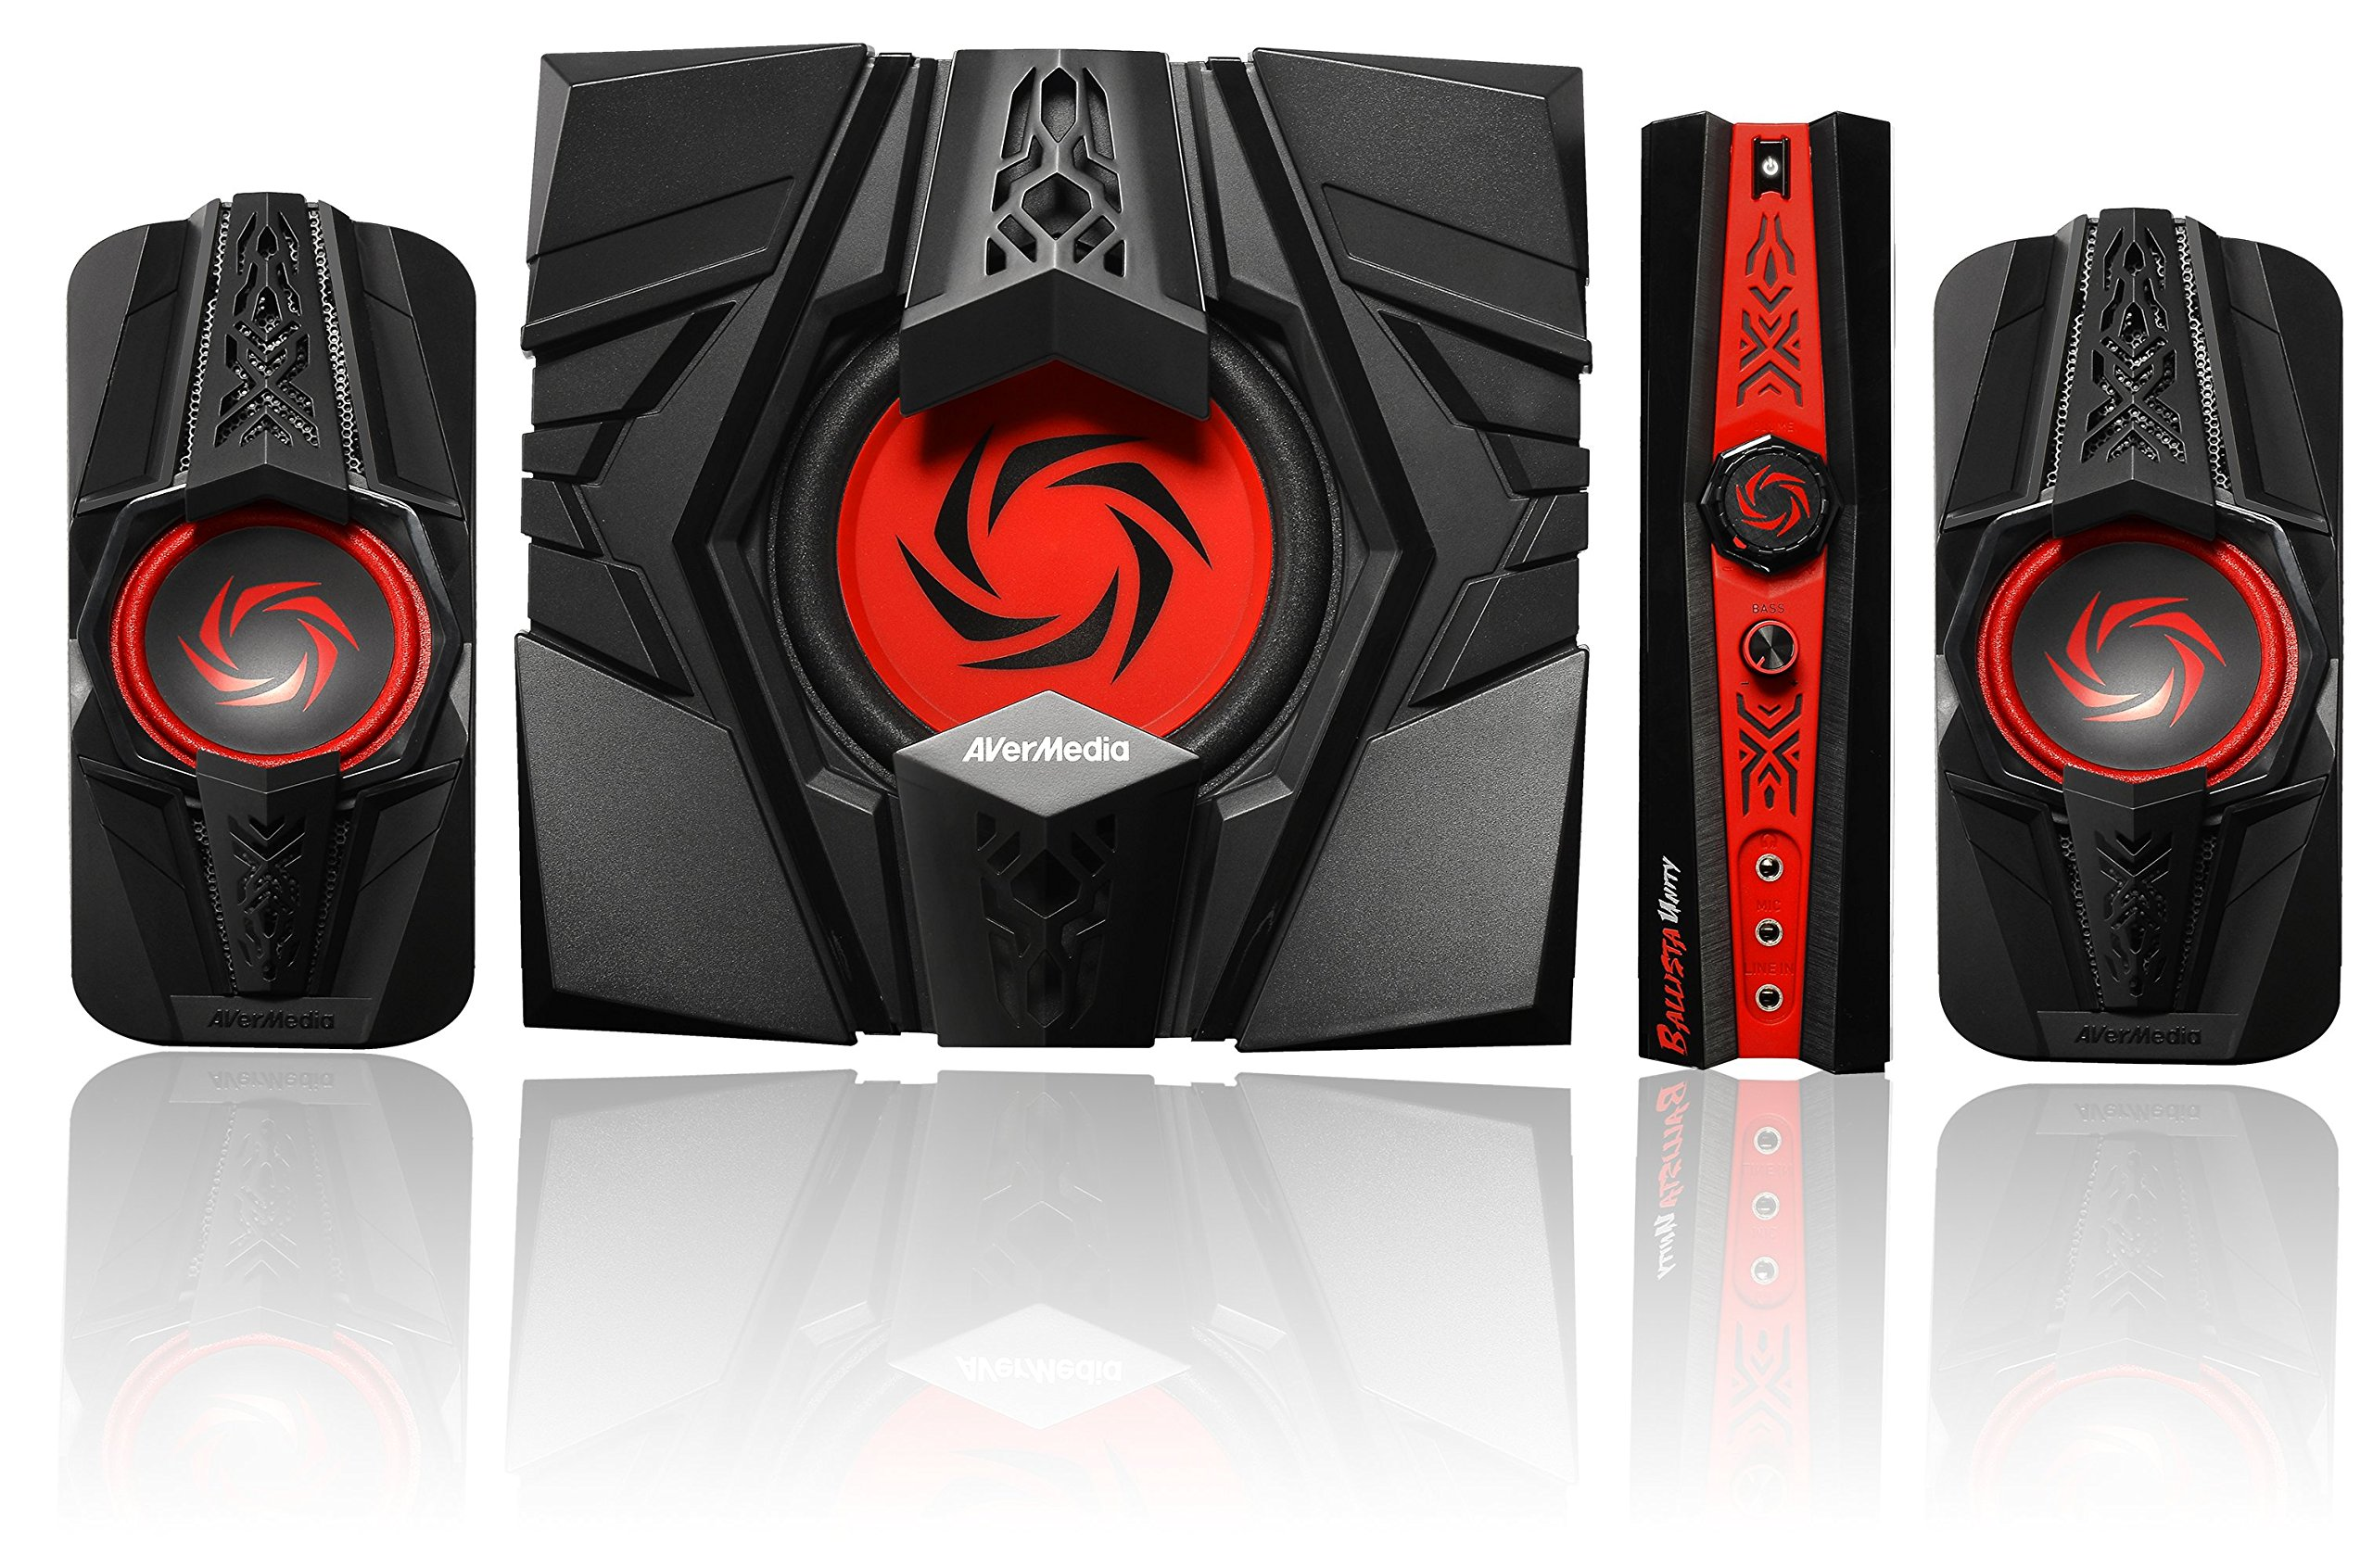 Cheap Speakers For Pc Gaming Find Deals On Logitech G560 Lightsync Speaker Get Quotations Avermedia Ballista Unity 21 Audio Sound System 40 Watts